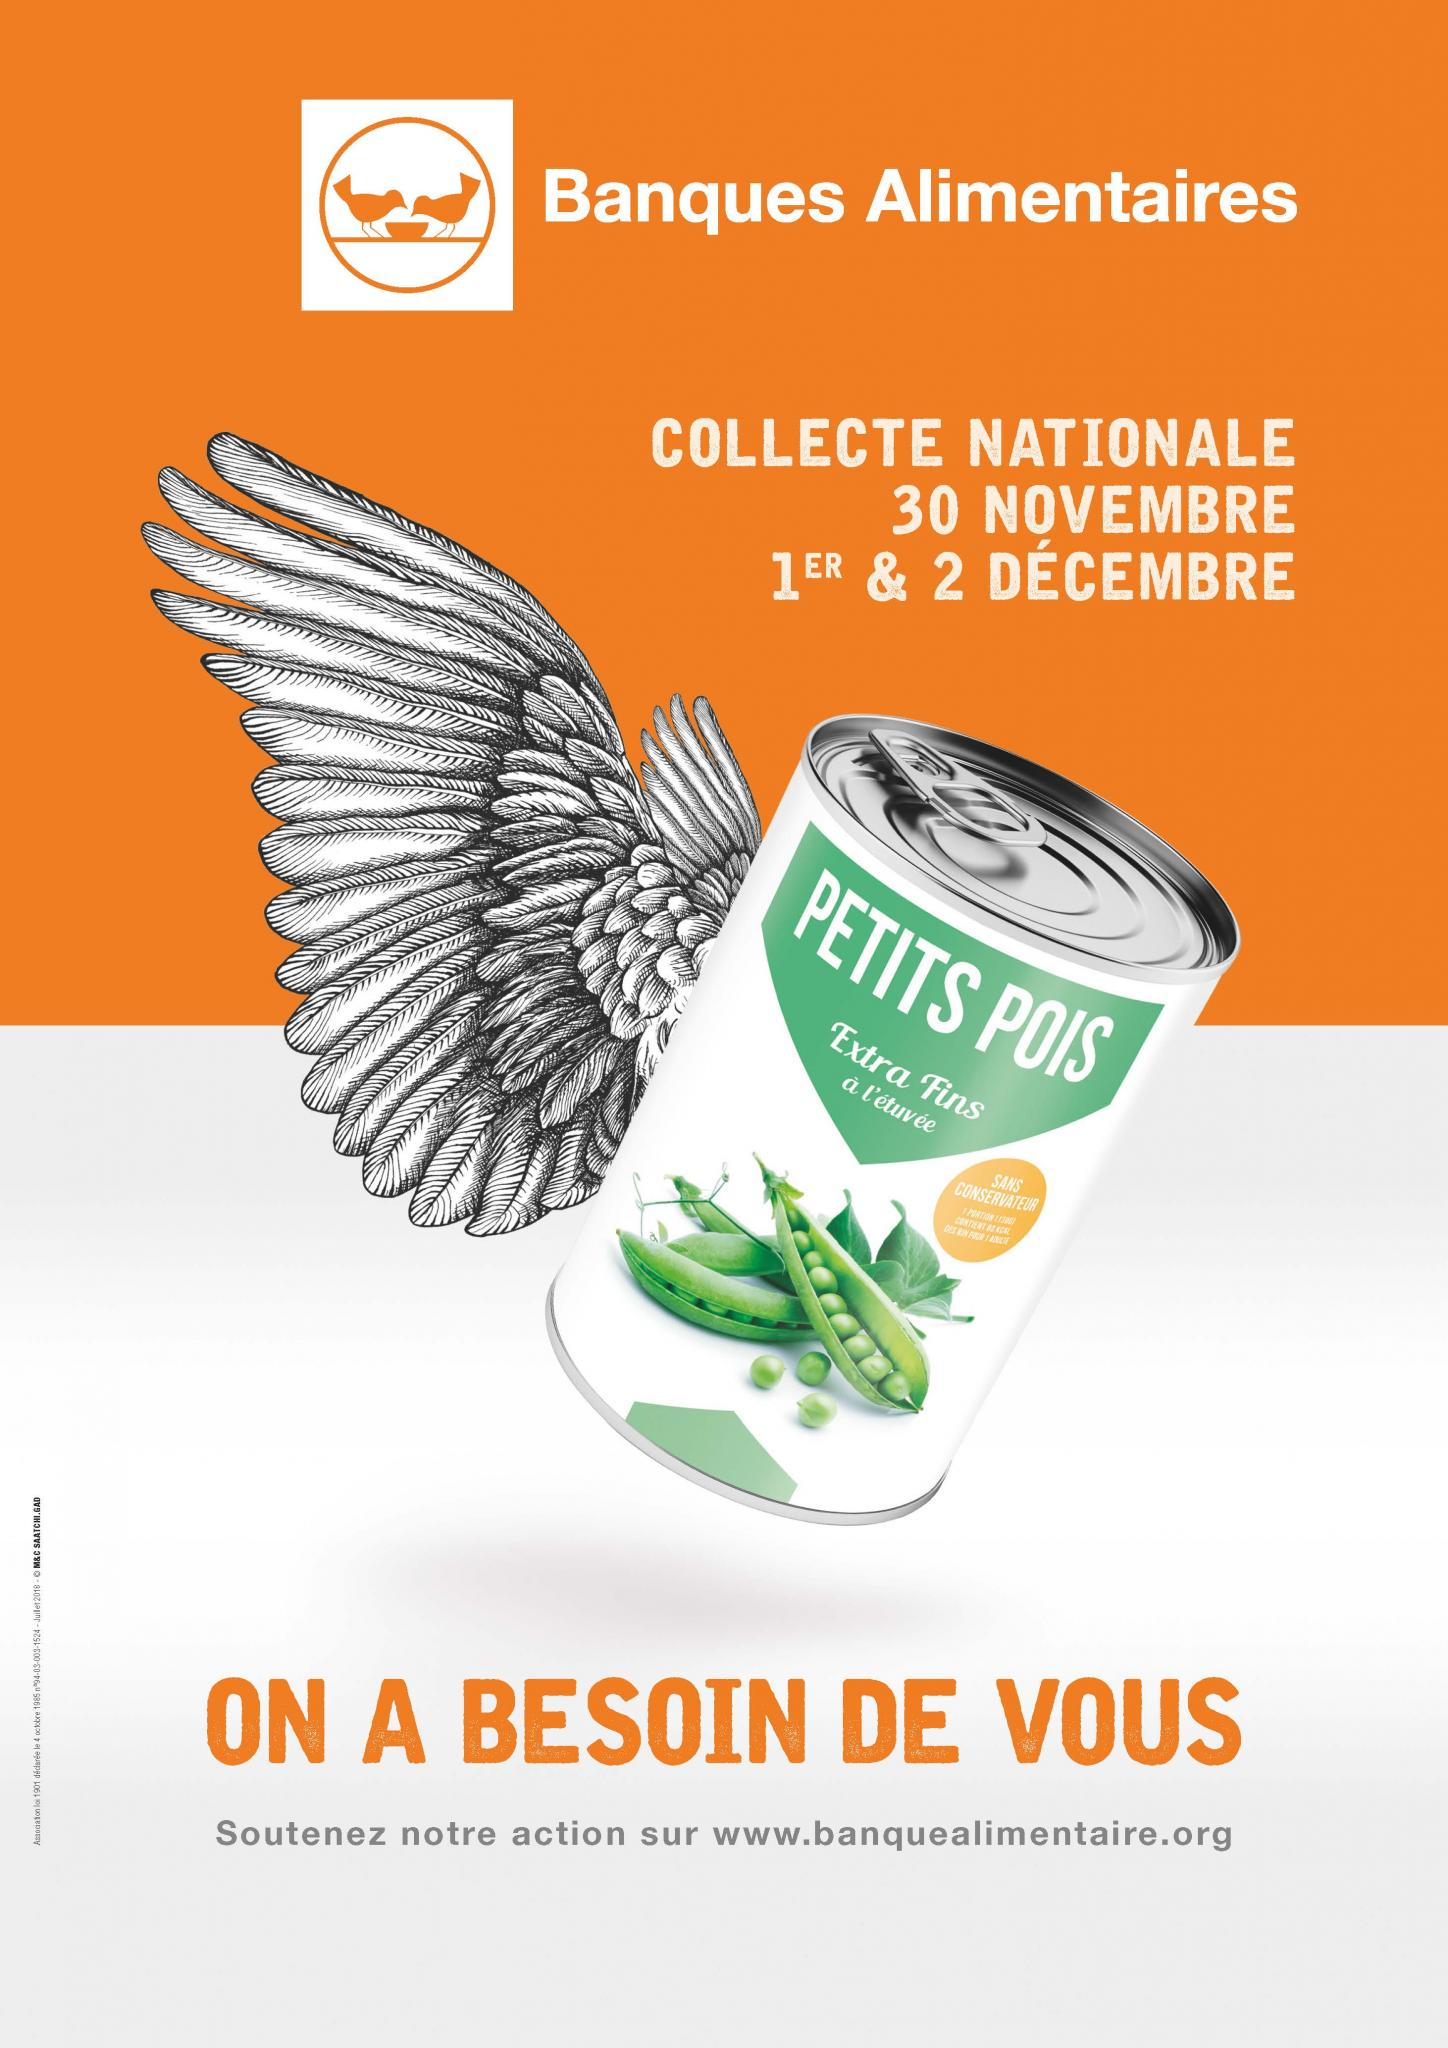 affiche collecte nationale 2018 banques alimentaires